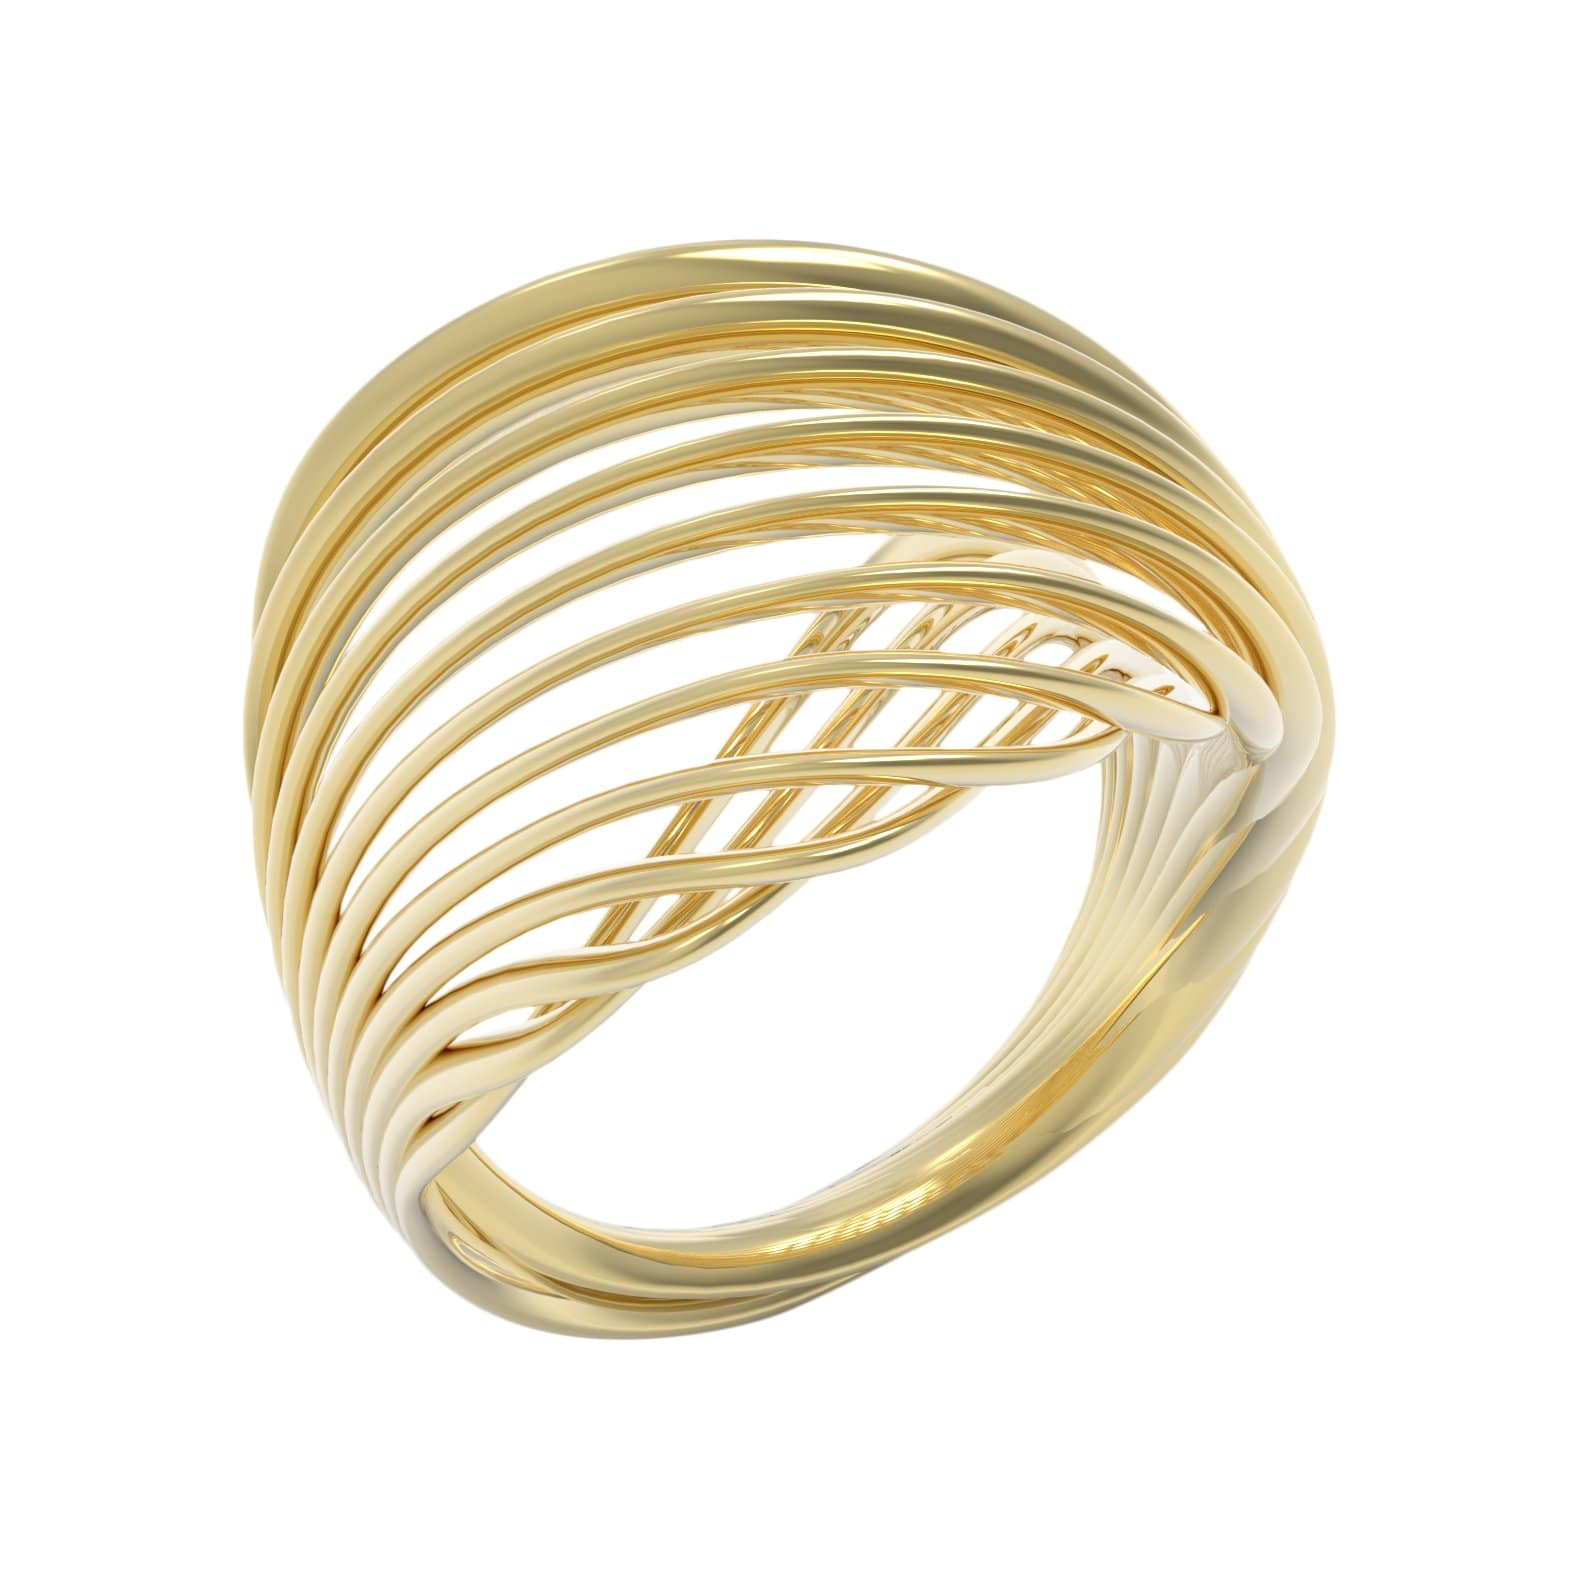 DDNKA Studio Rings Gold Plated / 4.5 Ponche Ring